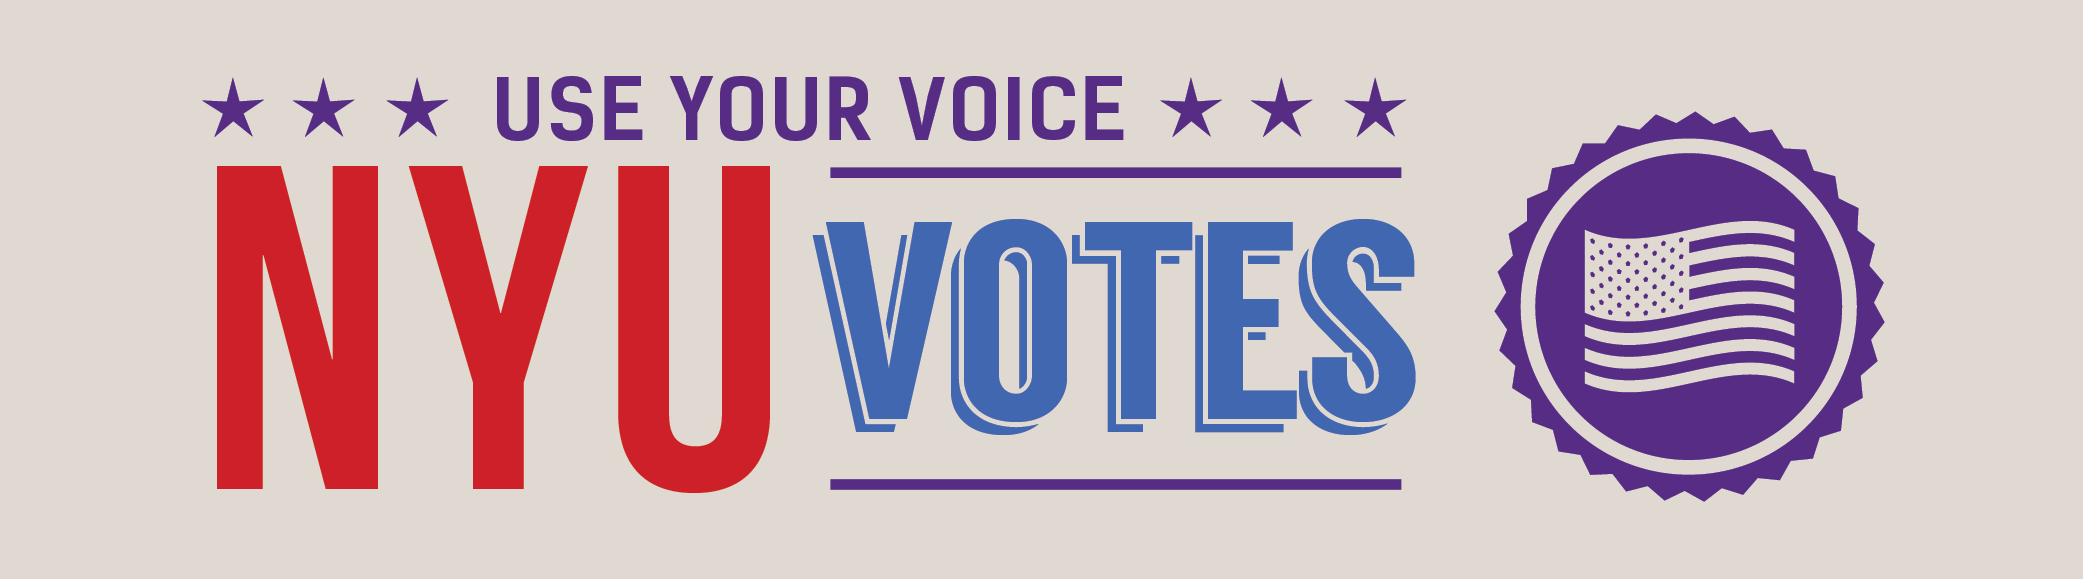 Use Your Voice - NYU Votes